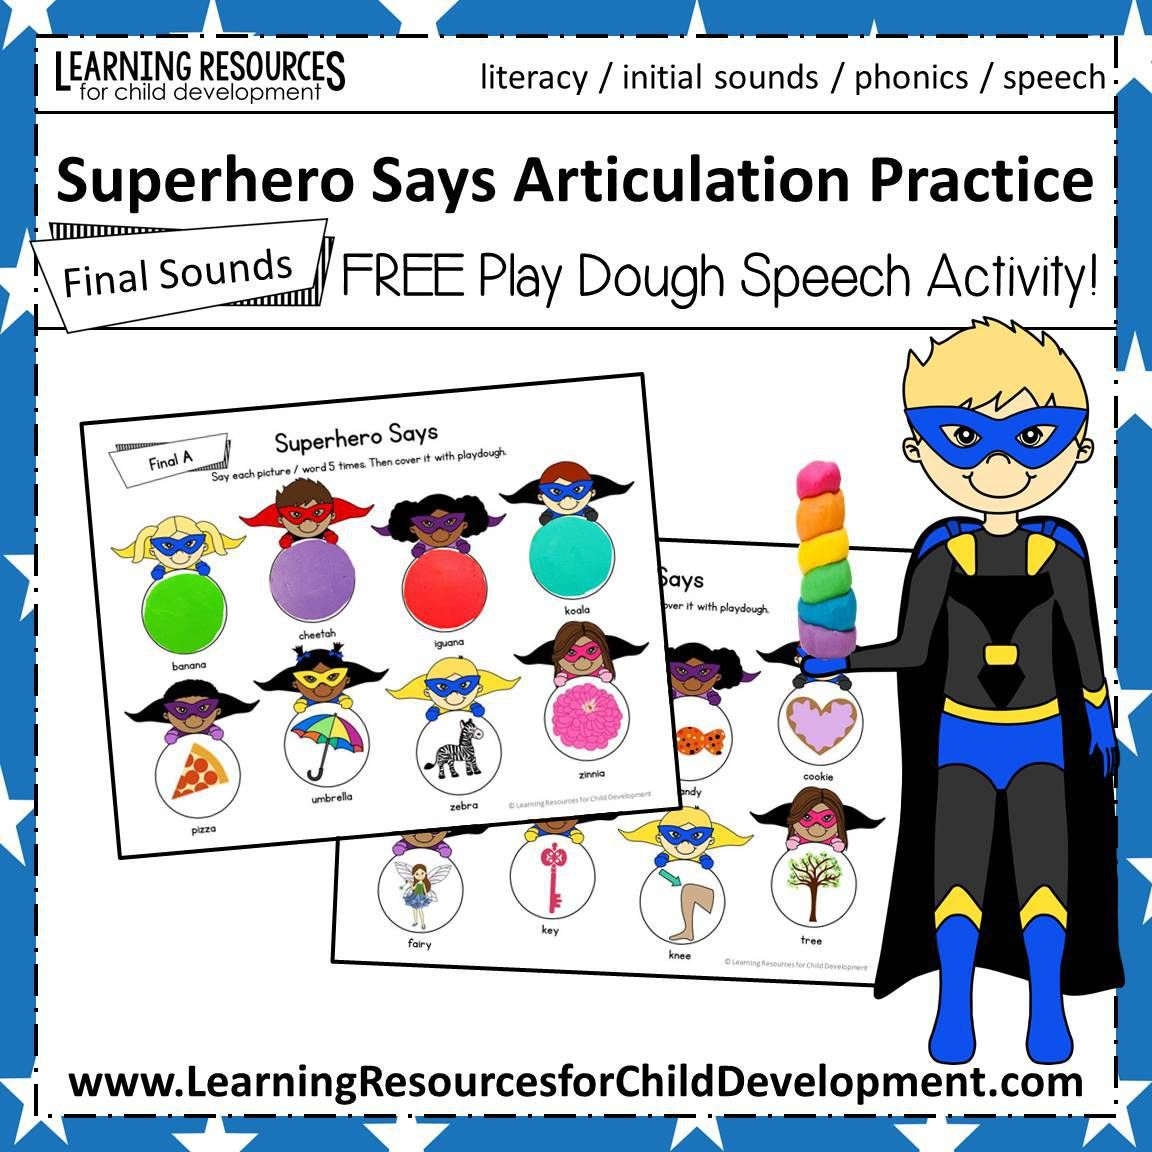 Superhero Says Articulation Practice